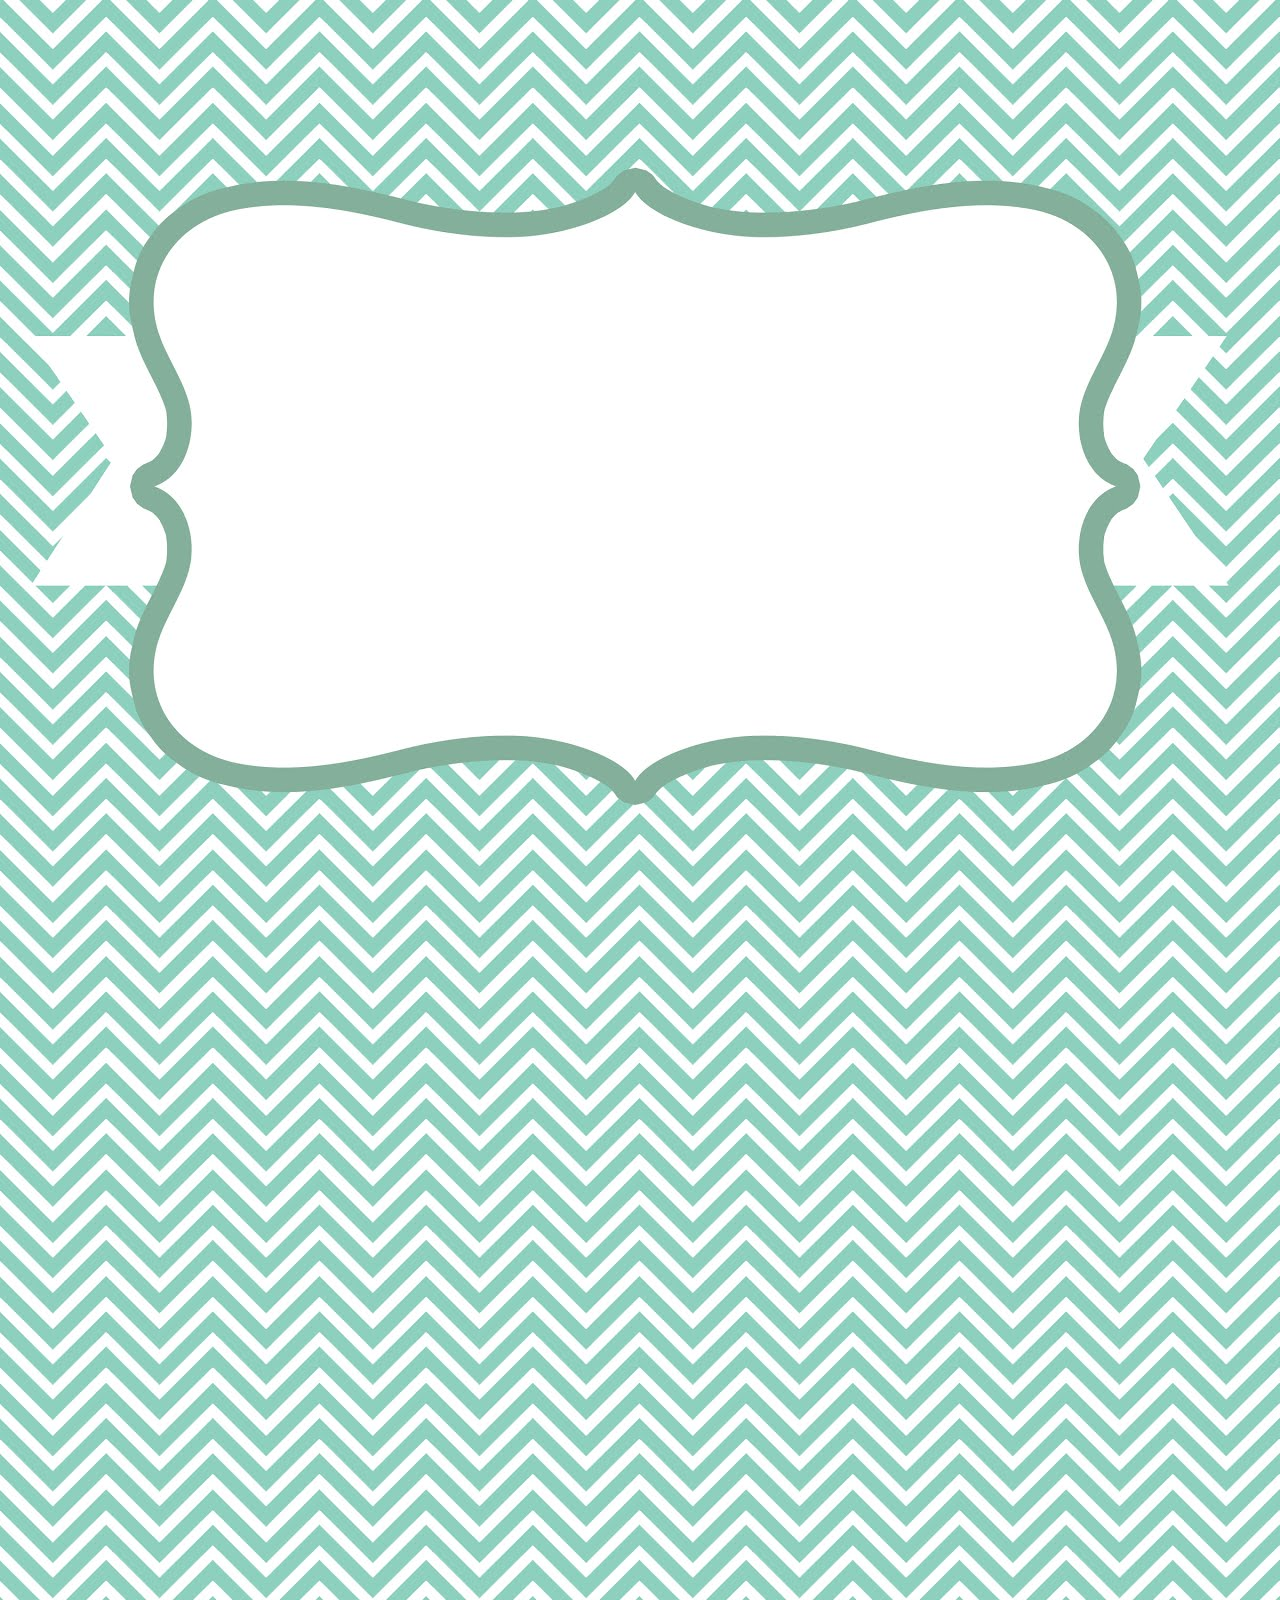 8 best images of blank chevron binder cover printables for Cool binder cover templates